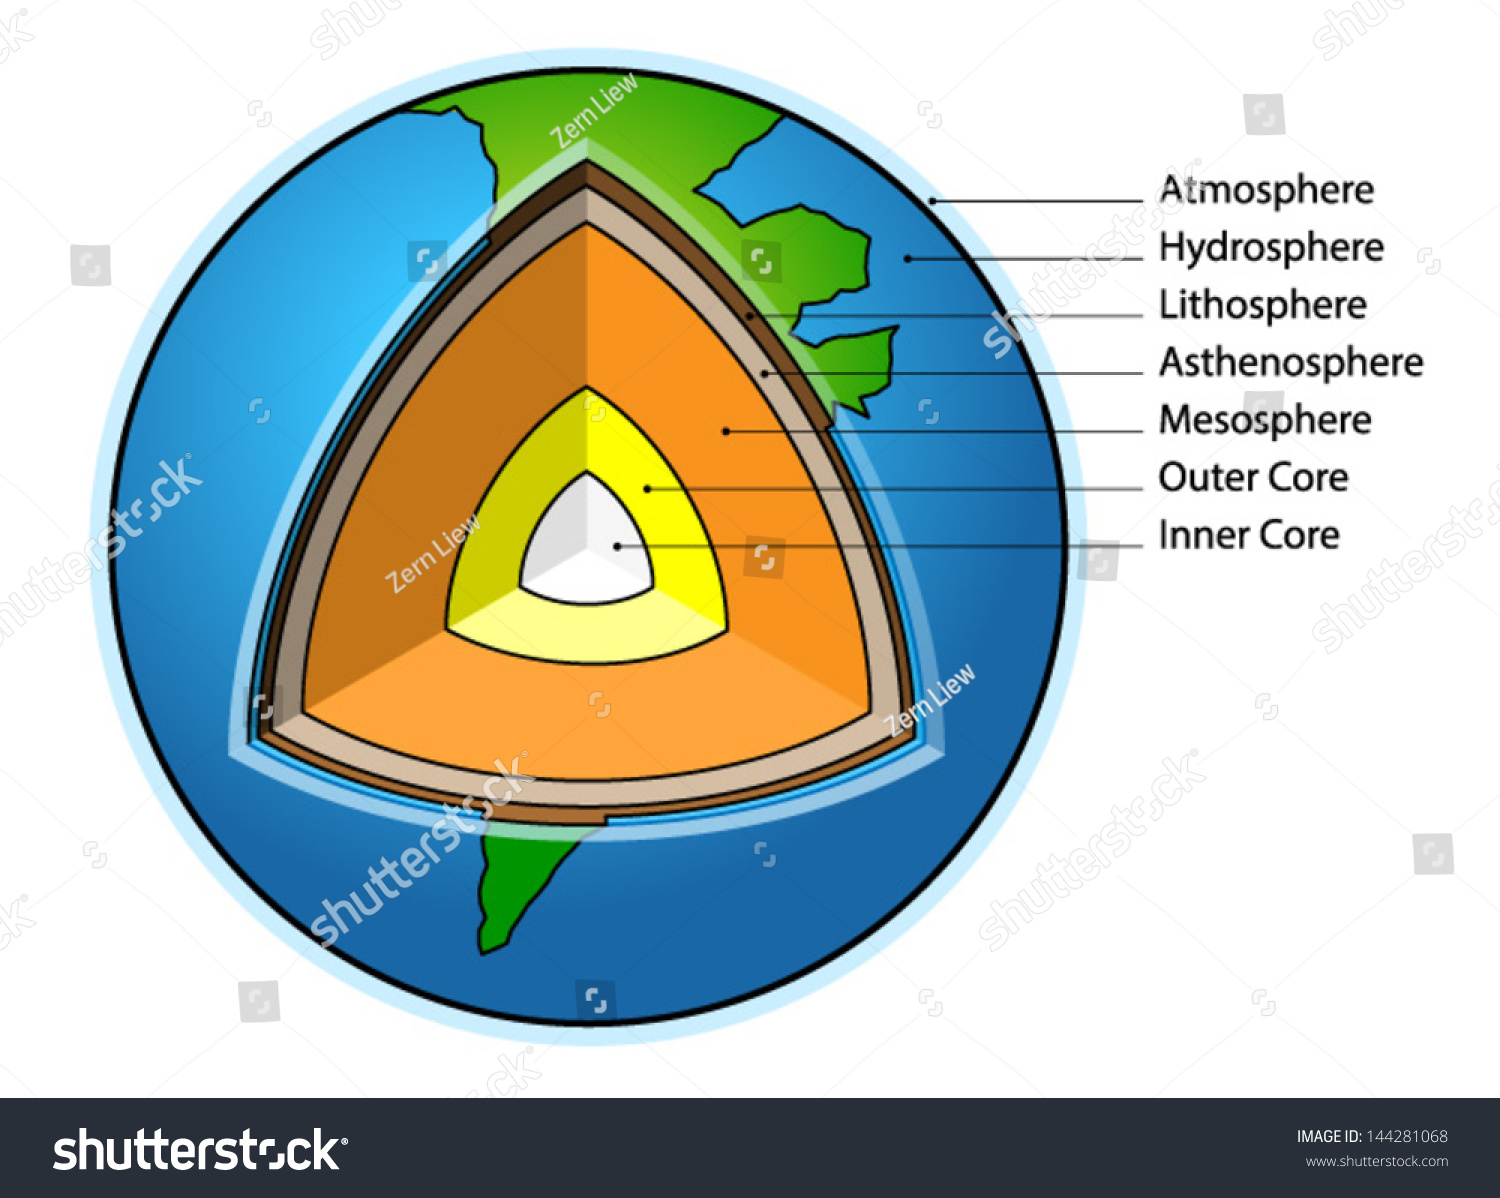 Sectional Diagram Showing The Structure Of The Earth